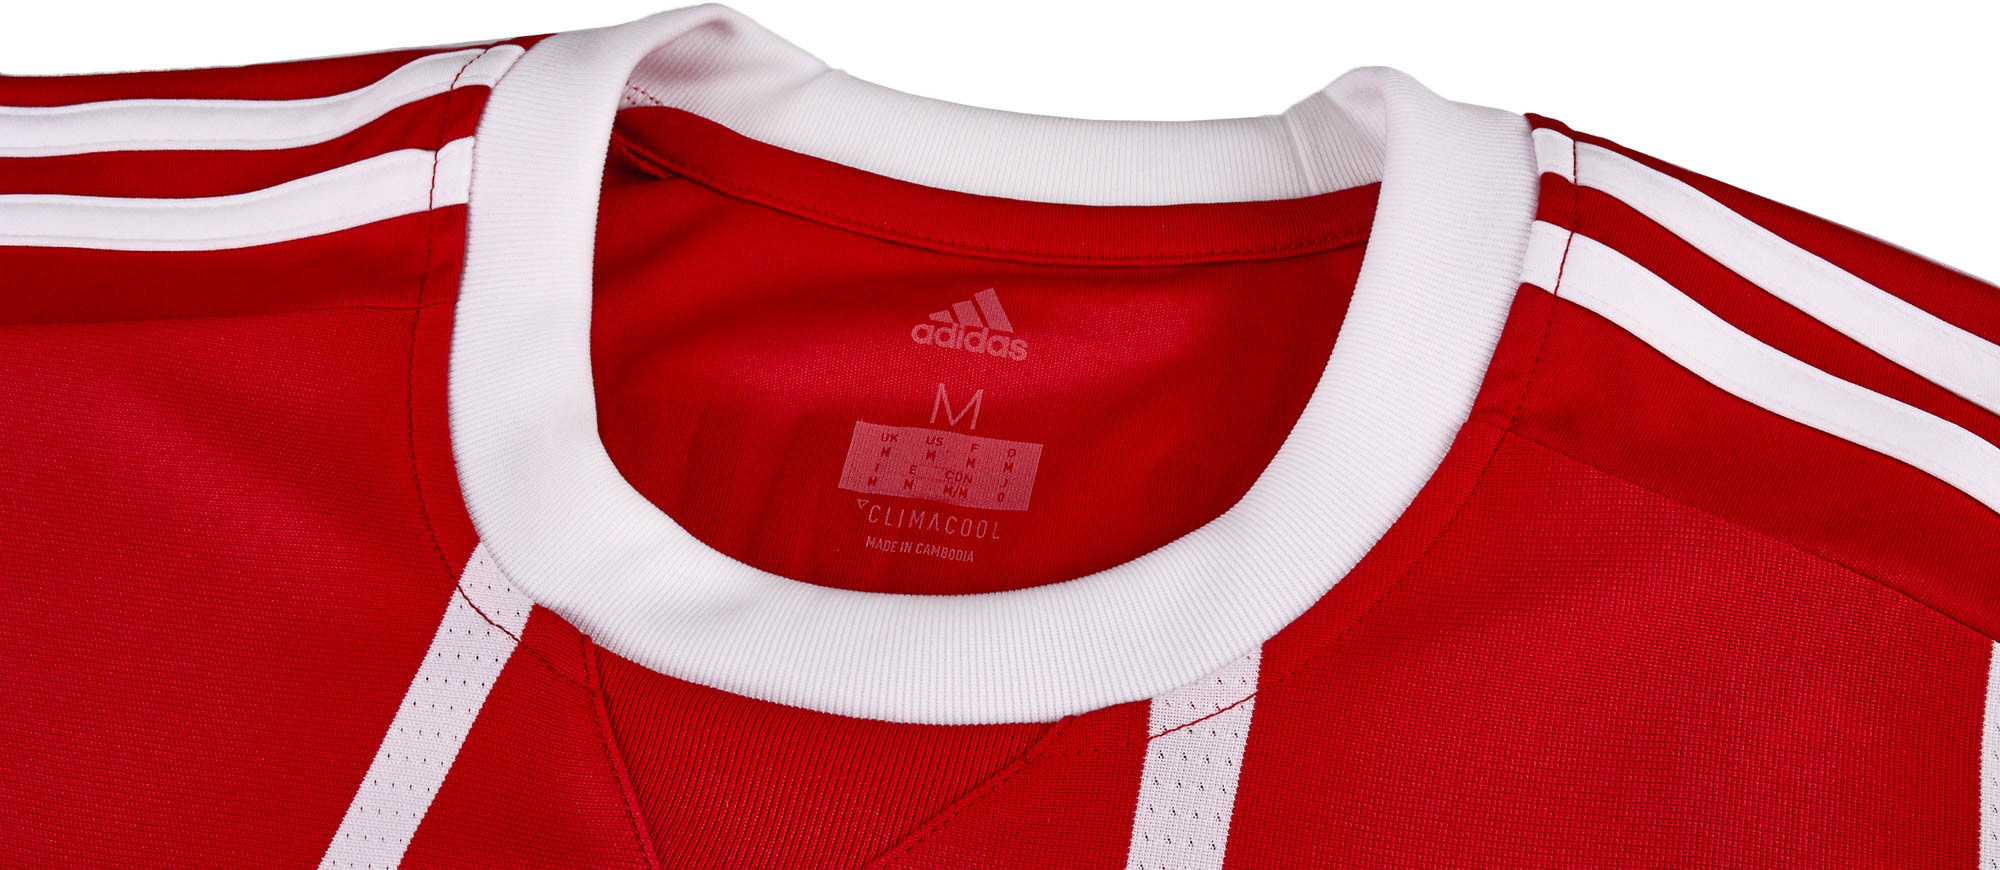 2017 18 adidas kids bayern munich home jersey. Black Bedroom Furniture Sets. Home Design Ideas